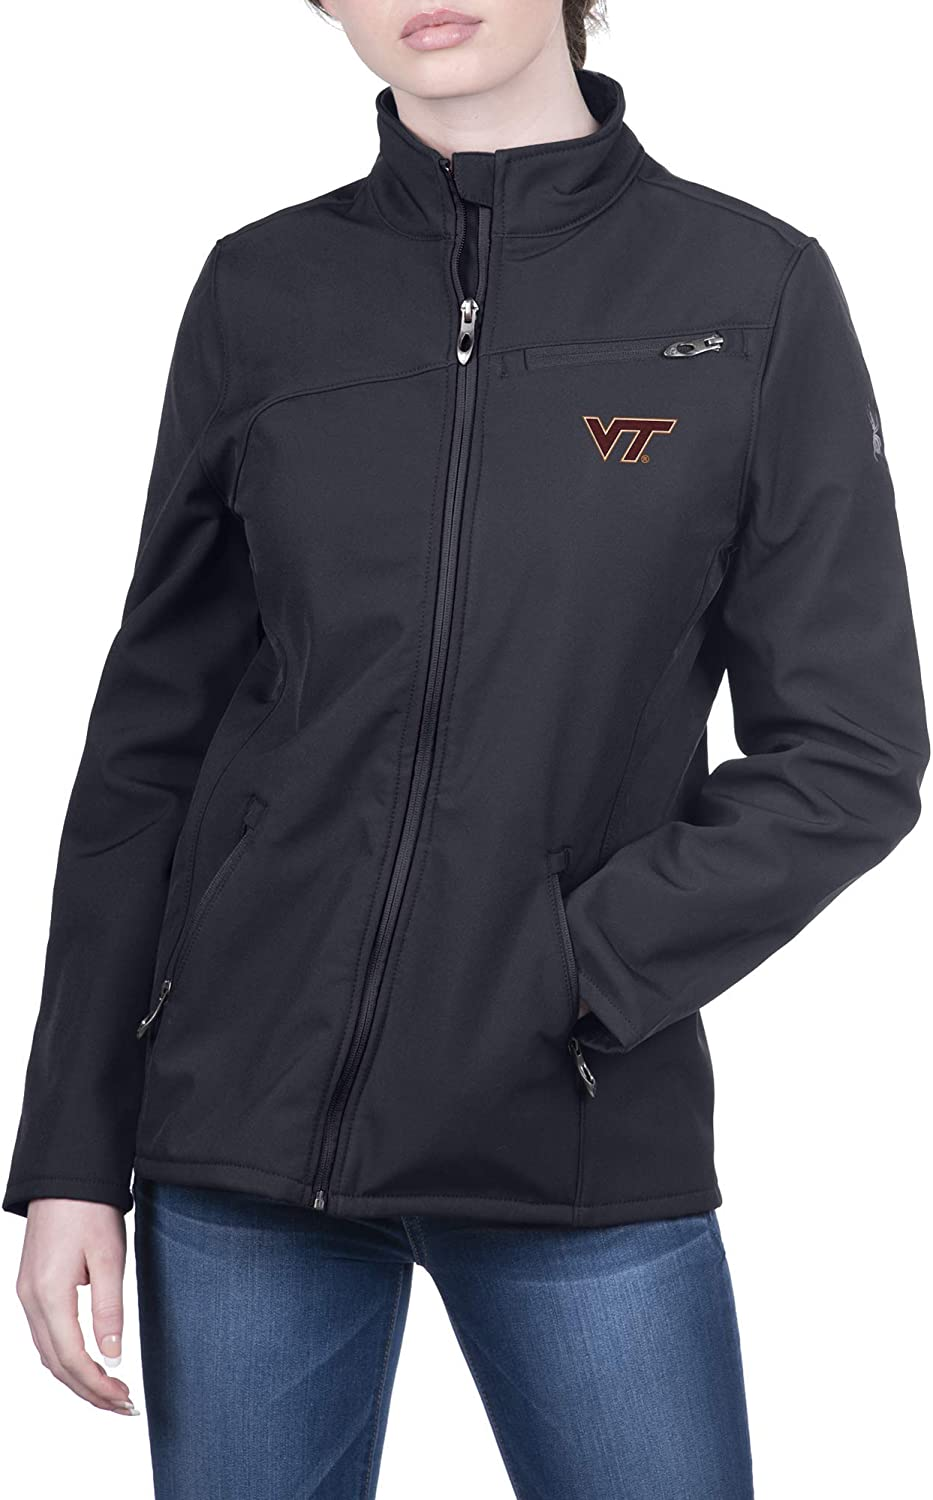 Spyder Women's Transport Full Some reservation Zip Gameday Jacket Outlet sale feature Soft Shell